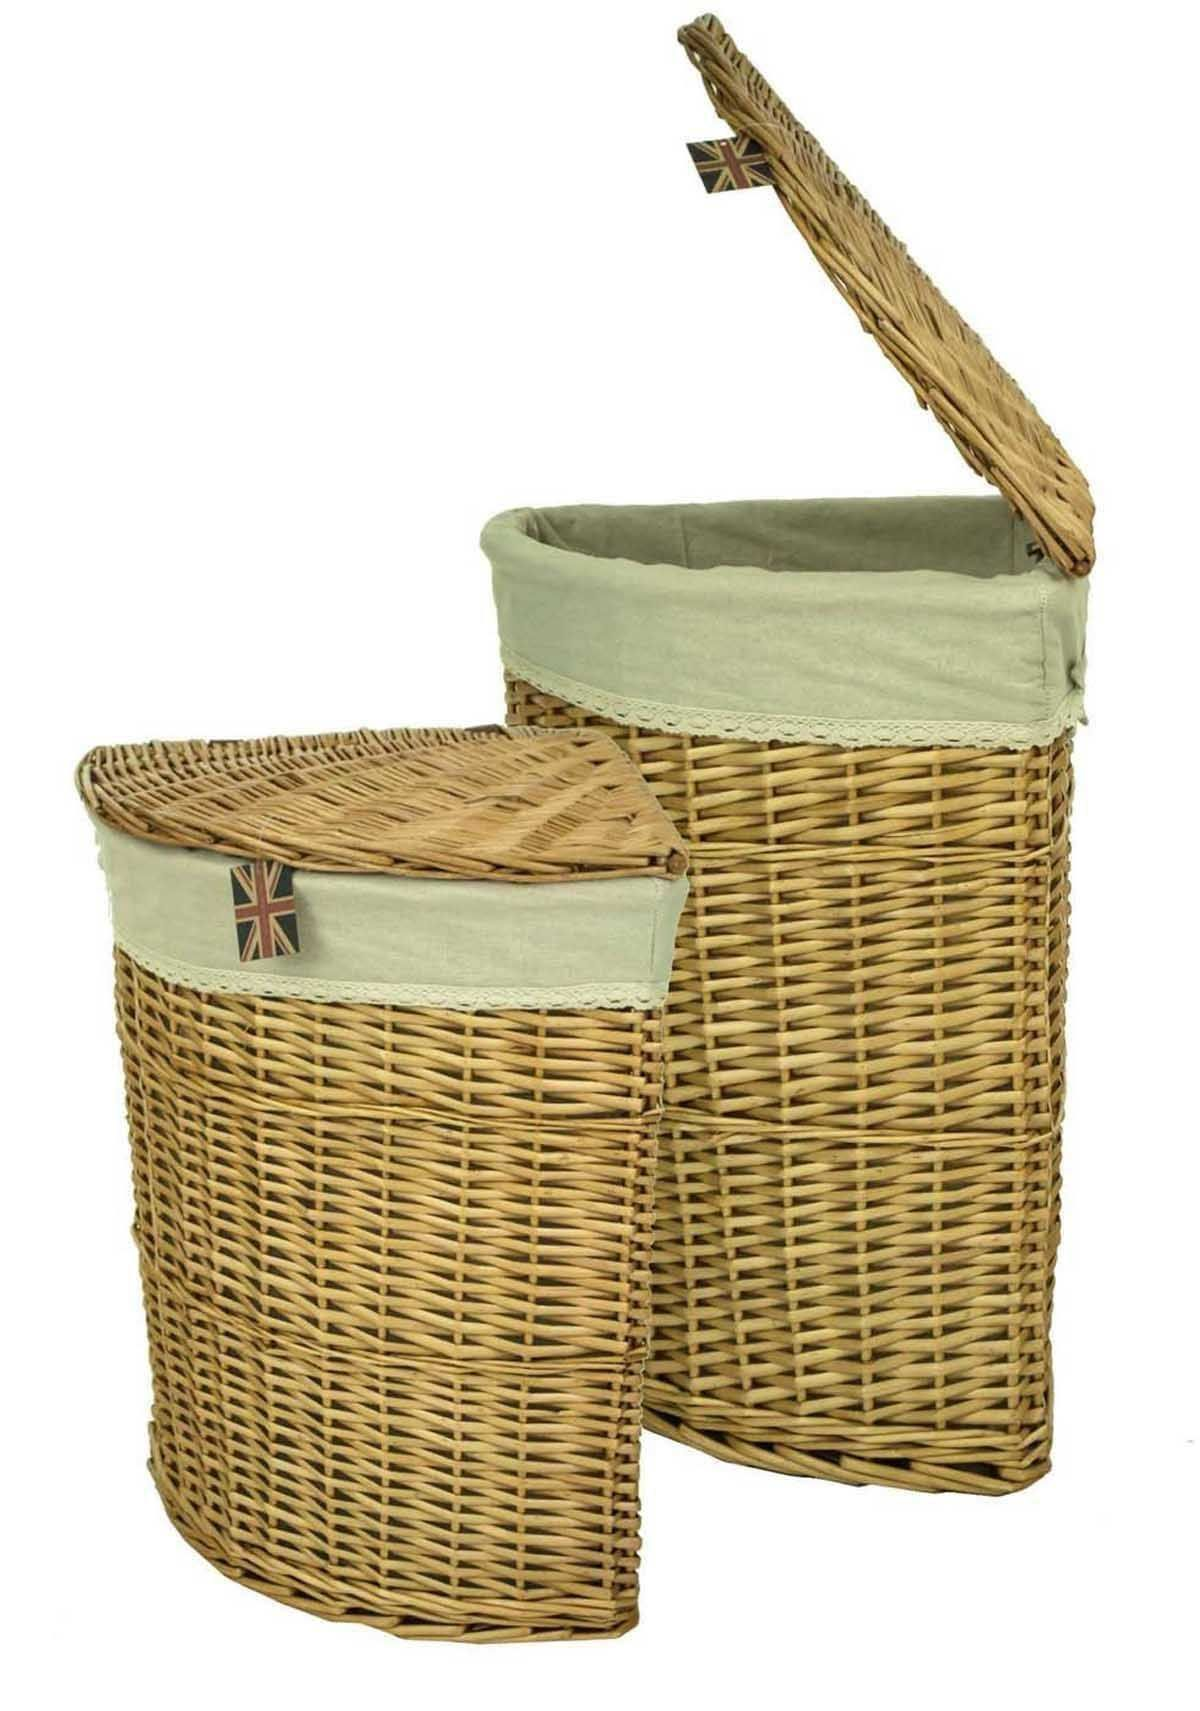 East2eden Honey Lidded Wicker Corner Linen Laundry Bin Storage Basket With  Canvas U0026 Lace Liner